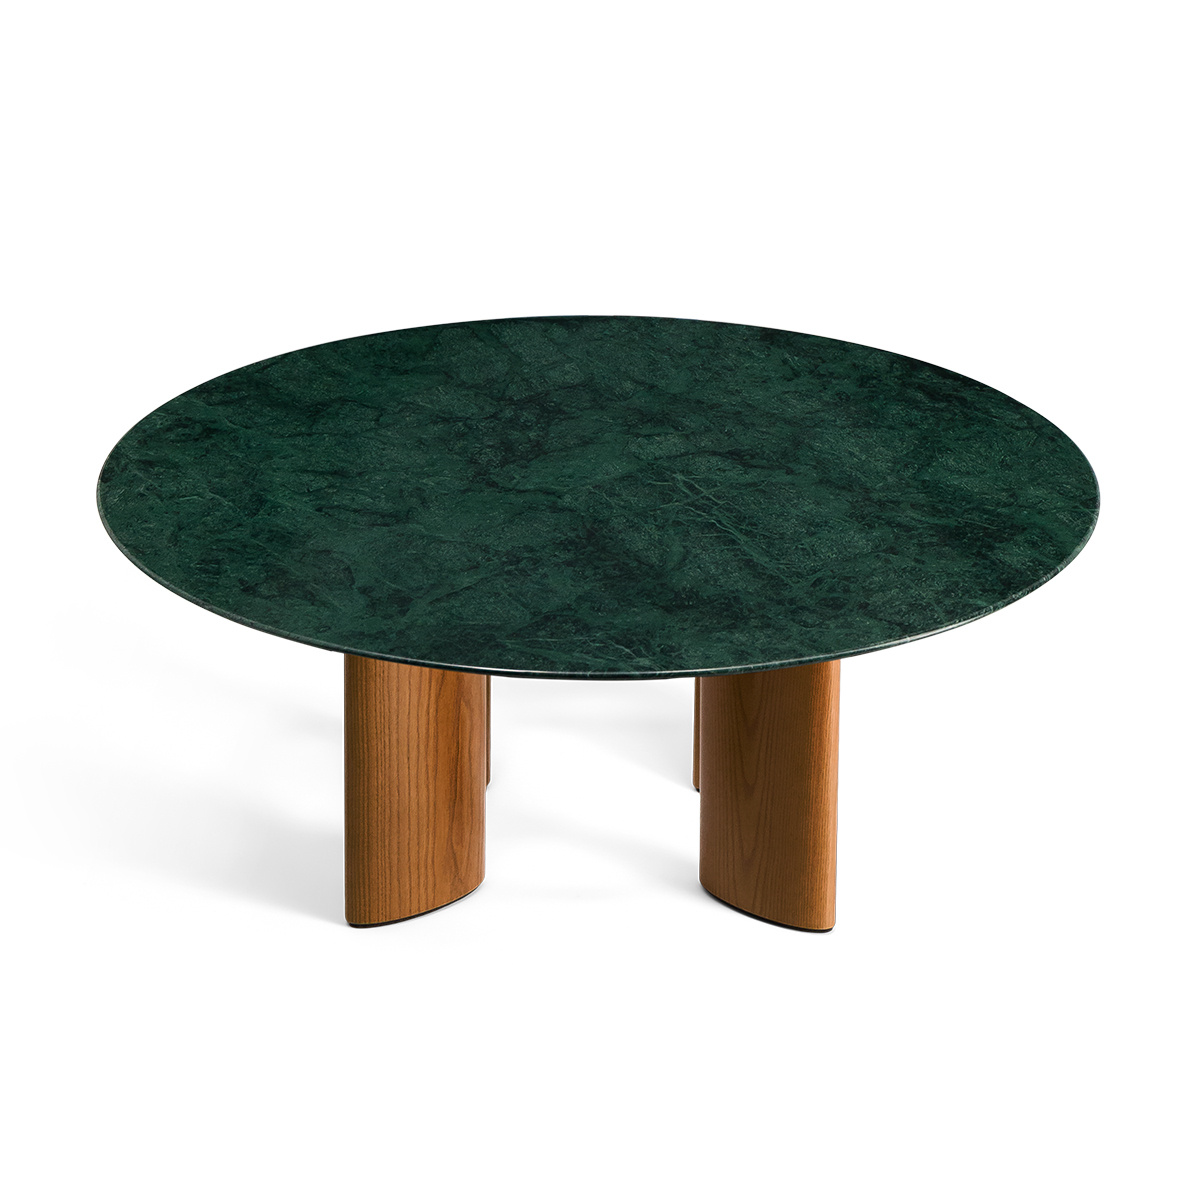 Carlotta Coffee Table, Green Marble Top and Ash Wood with Iroko Finsh Legs